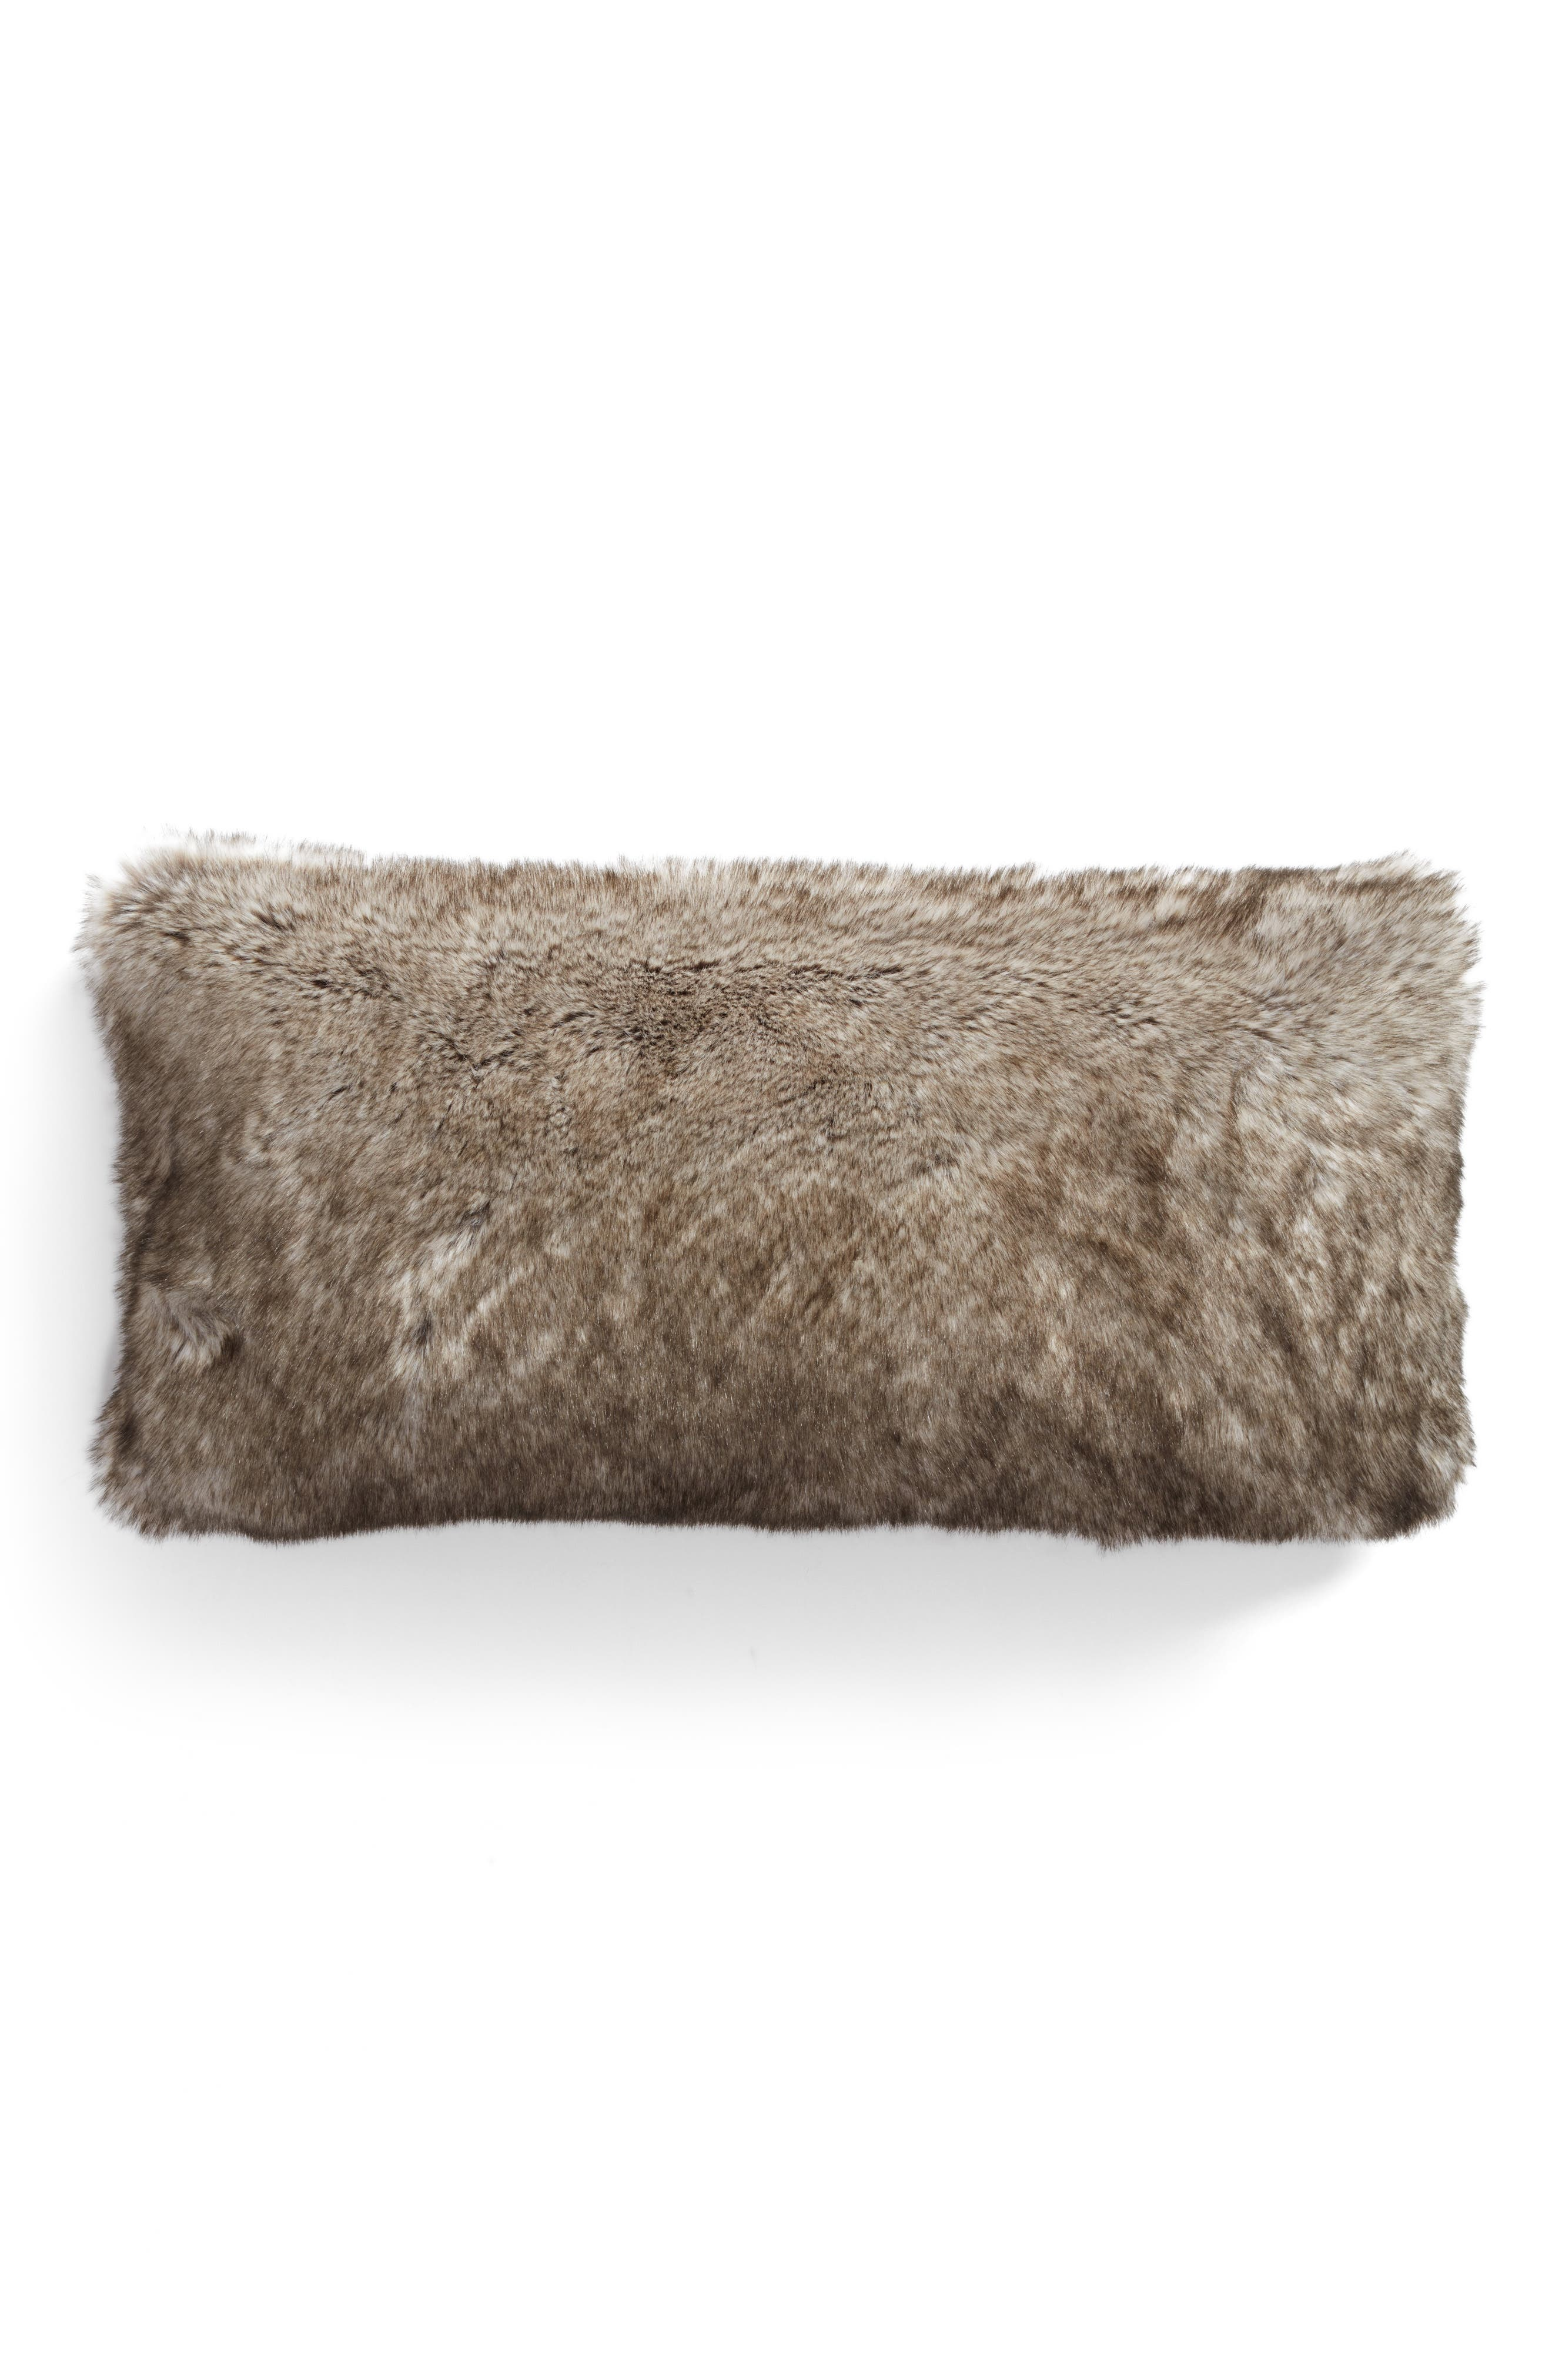 Nordstrom at Home Cuddle Up Faux Fur Accent Pillow